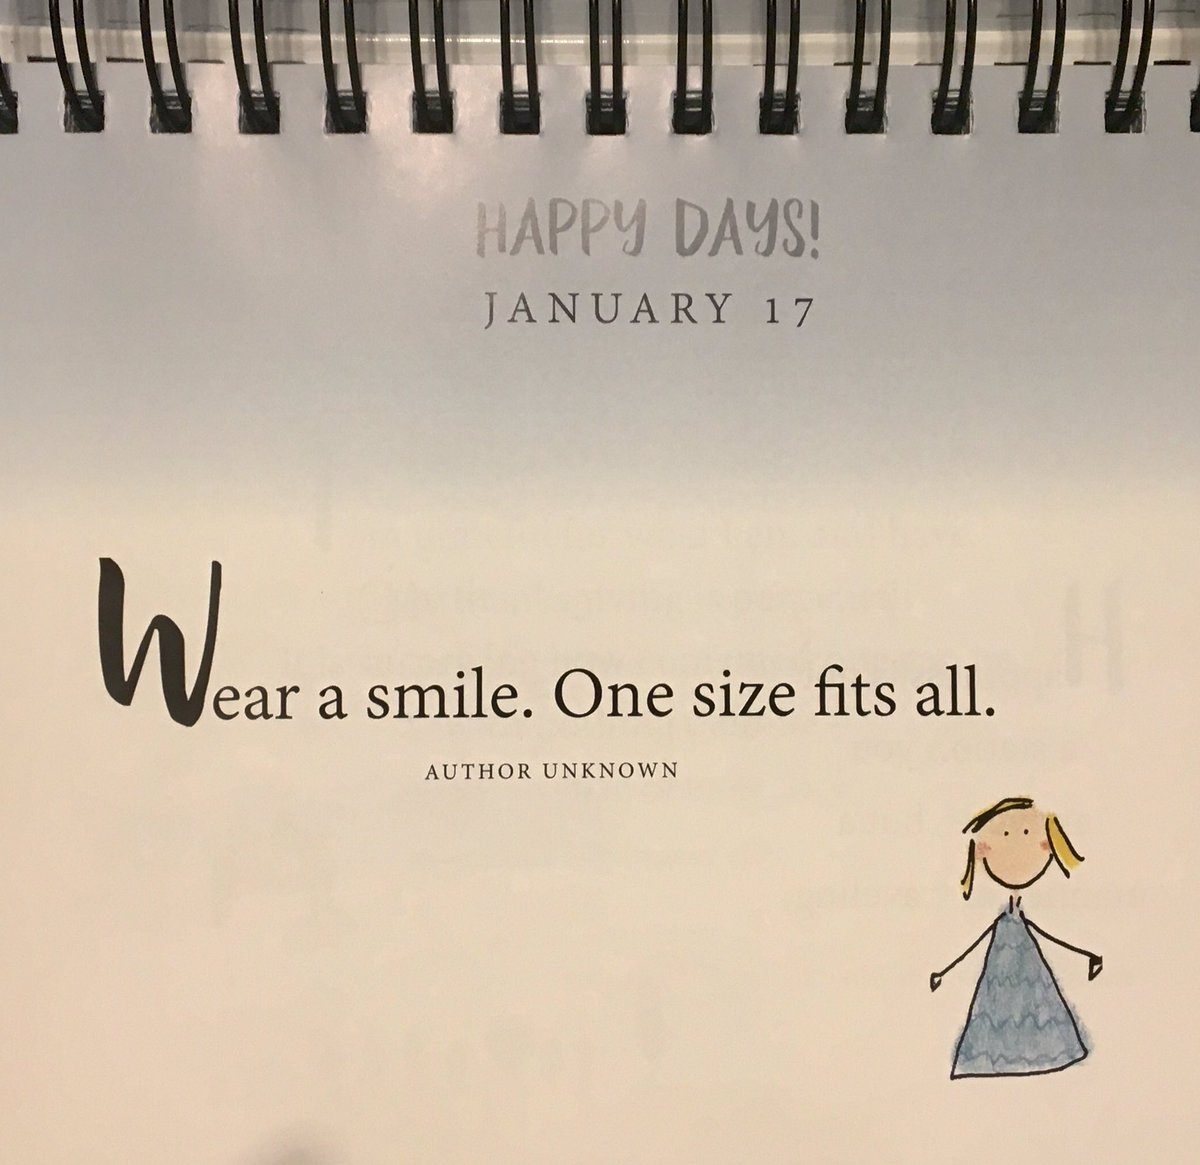 #Day17 A Song 🎶 SMILE by the talented Madeleine Peyroux   A Quote 🖼 A Positive Message 📝 #MentalHealthMatters #Musicislife #KindnessMatters #NeverGiveUp #Growstronger #Moveforward  #Smile #BeKind @THEJENNYG51 @SuzieYMA @MoveMENt_WA @forged_in_life 🌈